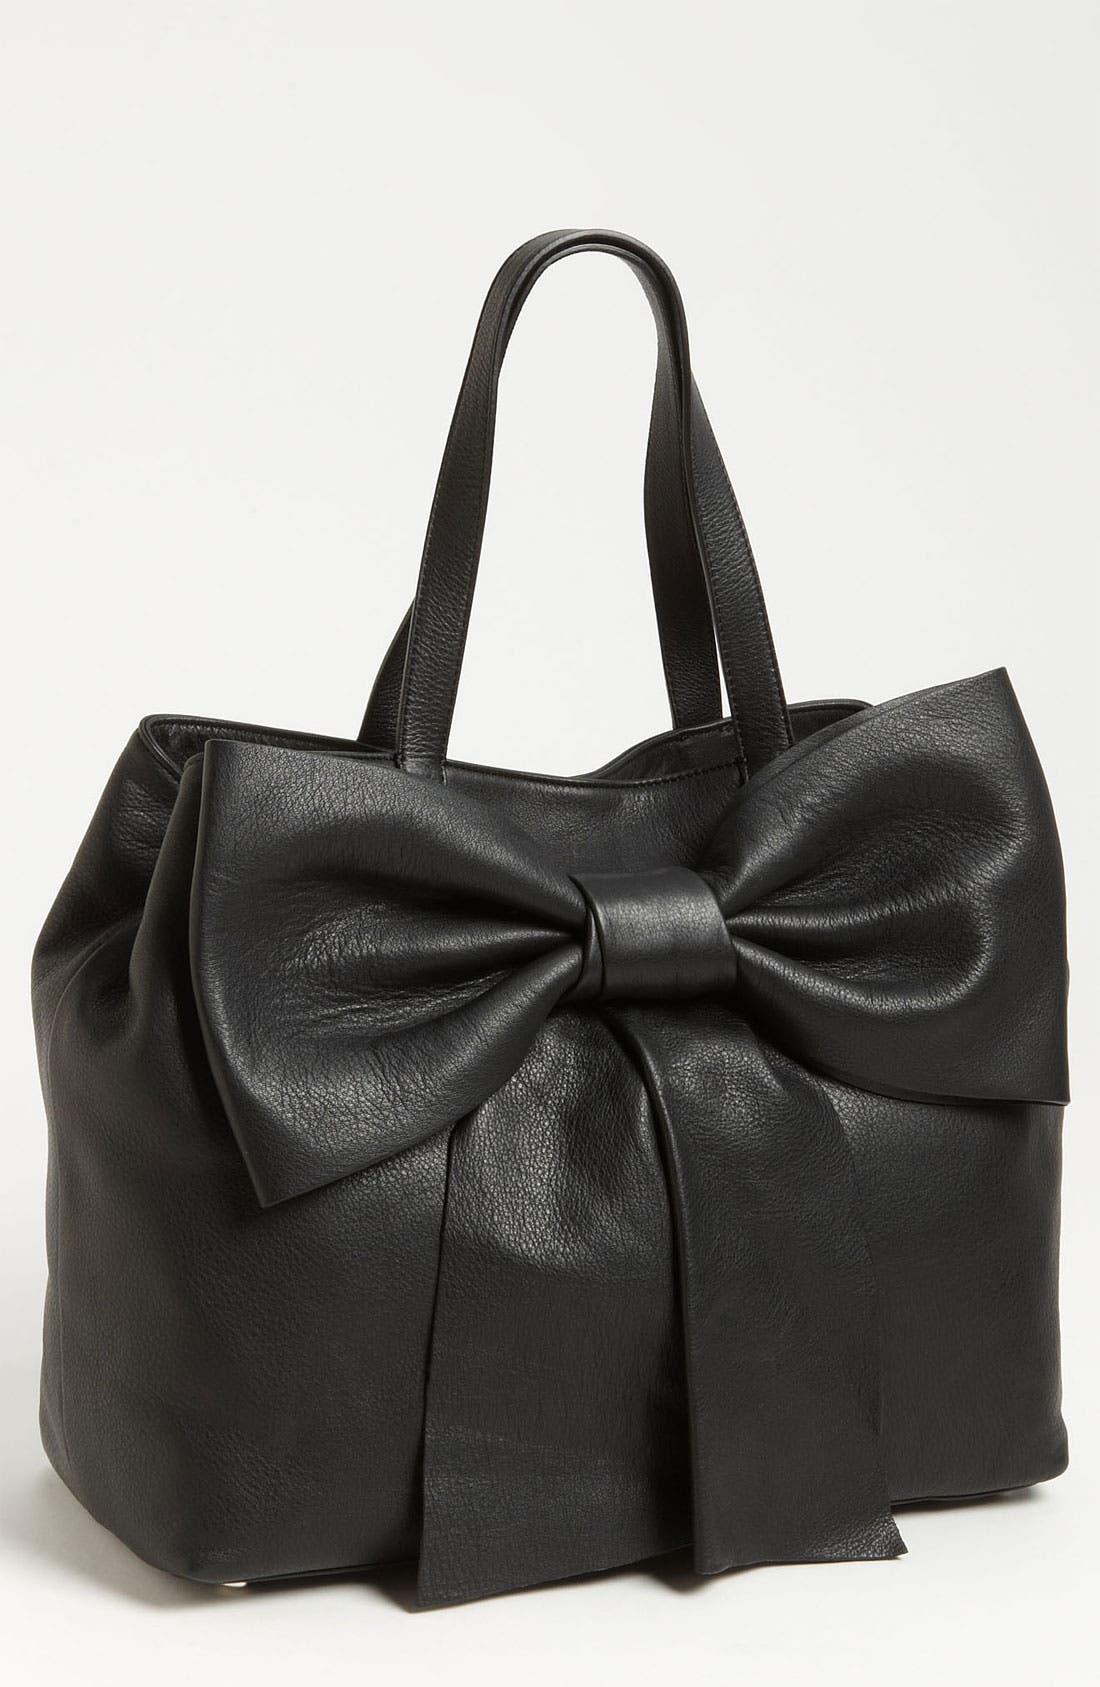 Alternate Image 1 Selected - RED Valentino 'Bow' Leather Satchel